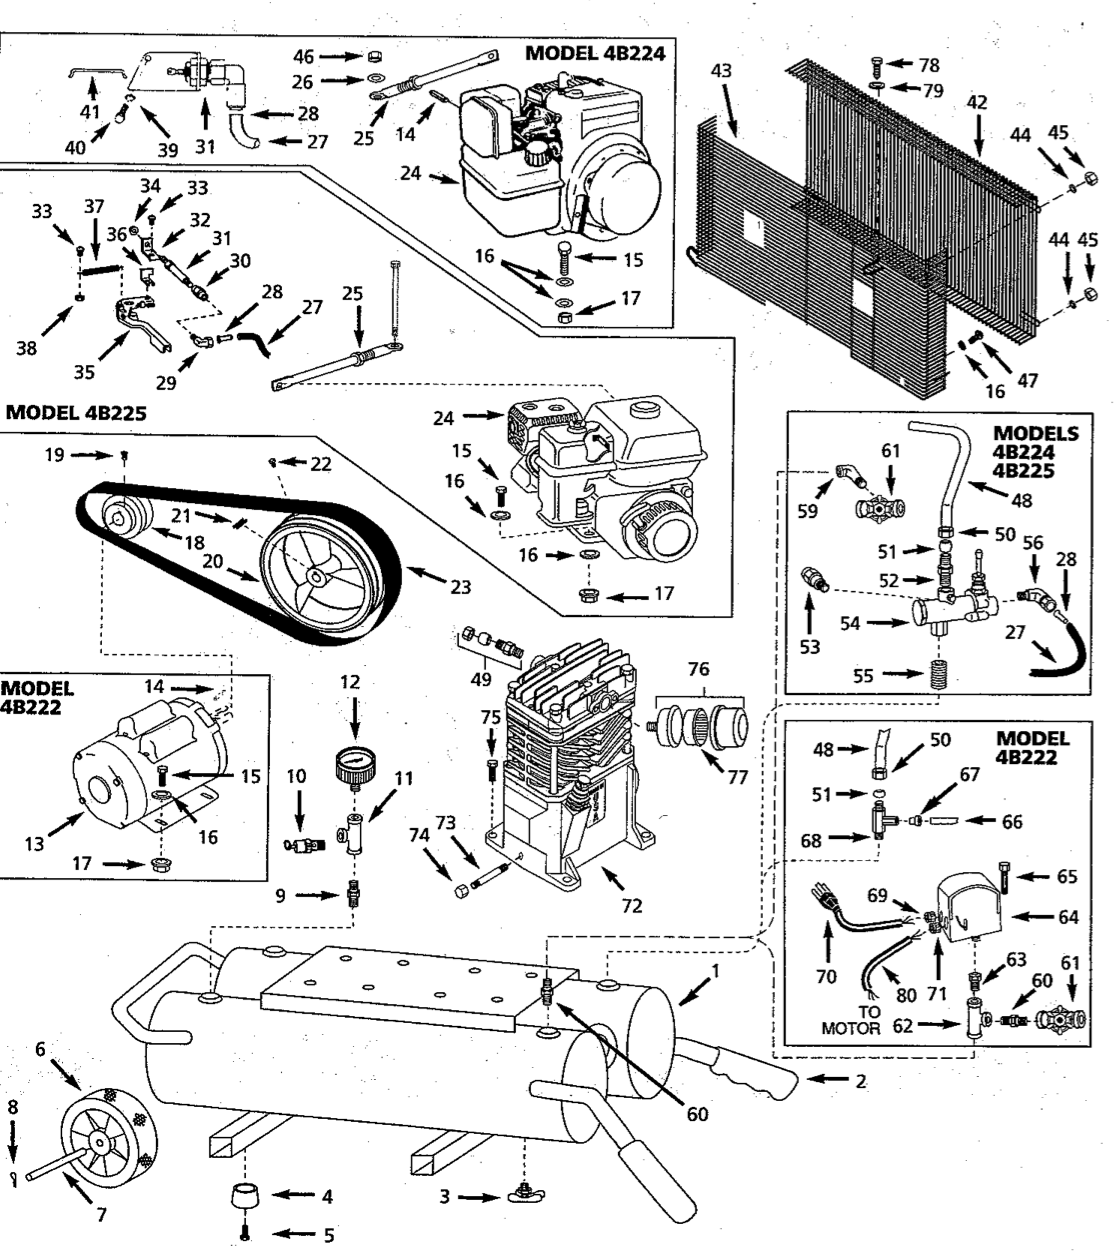 4B224_schematic speedaire 4b225 parts master tool repair powered aire wiring diagram at fashall.co